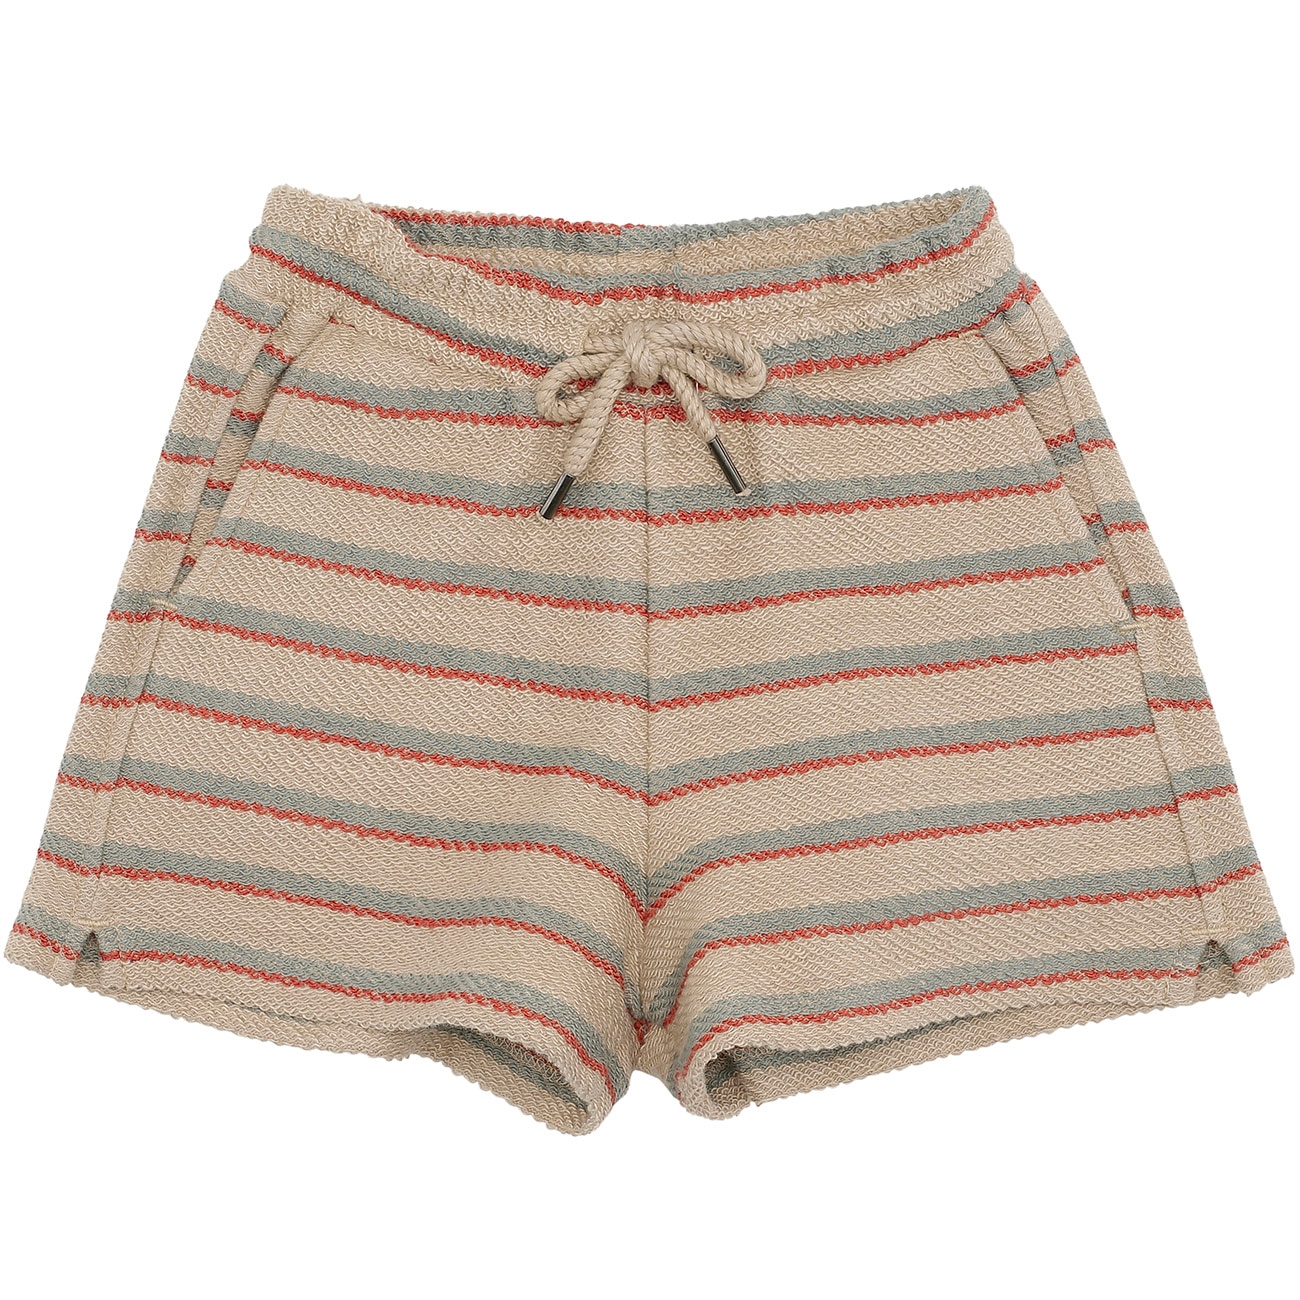 Soft-Gallery-Baby-Alisdair-Shorts-Mojave-Desert-Aop-Wavy-striber-stripes